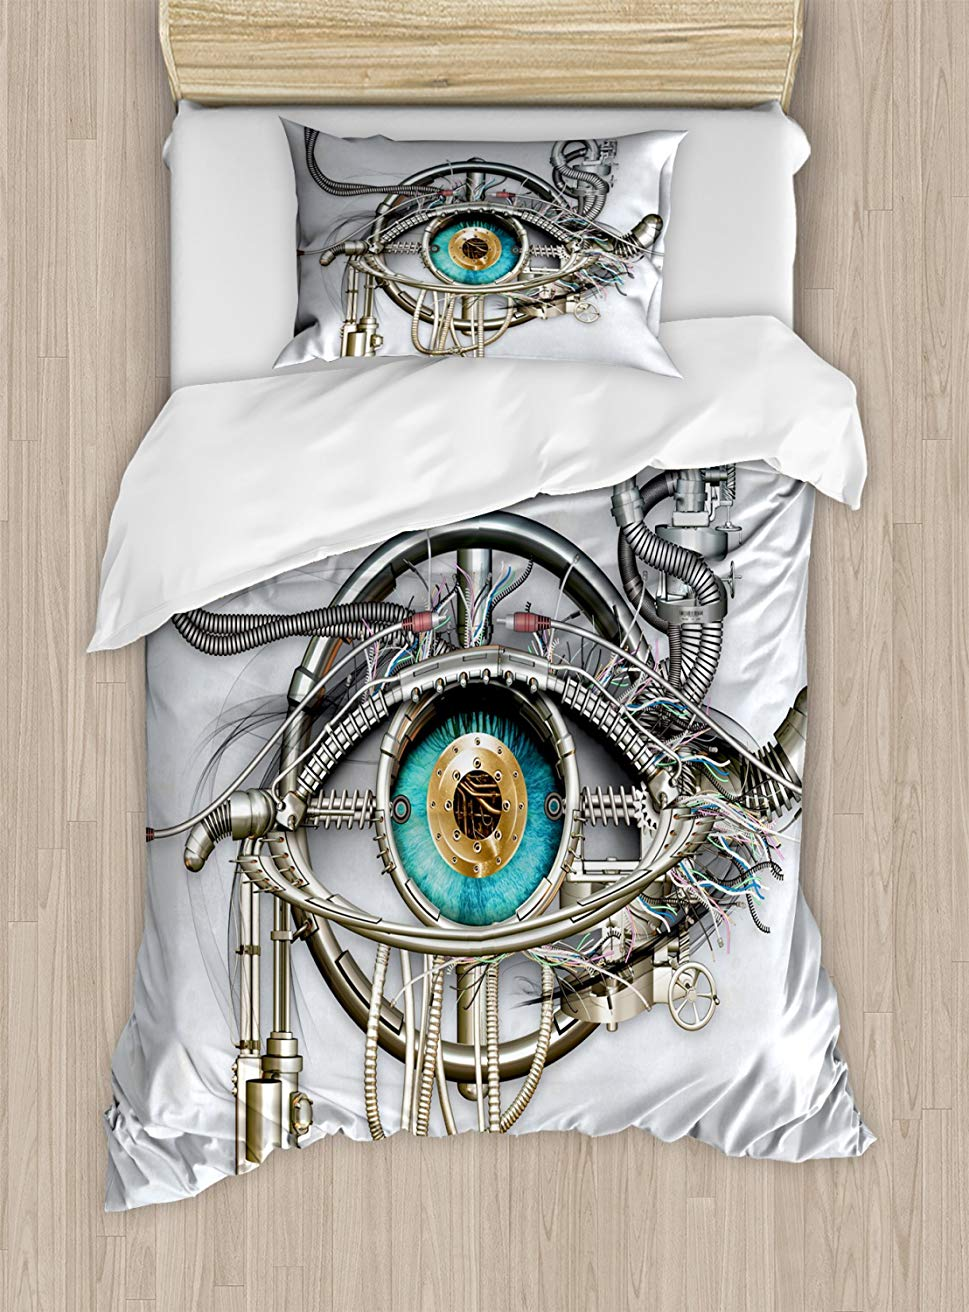 Eye Duvet Cover Set  Mechanical Design of an Eye Complex Machinery with Engineering and Technology Theme 2 Piece Bedding SetEye Duvet Cover Set  Mechanical Design of an Eye Complex Machinery with Engineering and Technology Theme 2 Piece Bedding Set